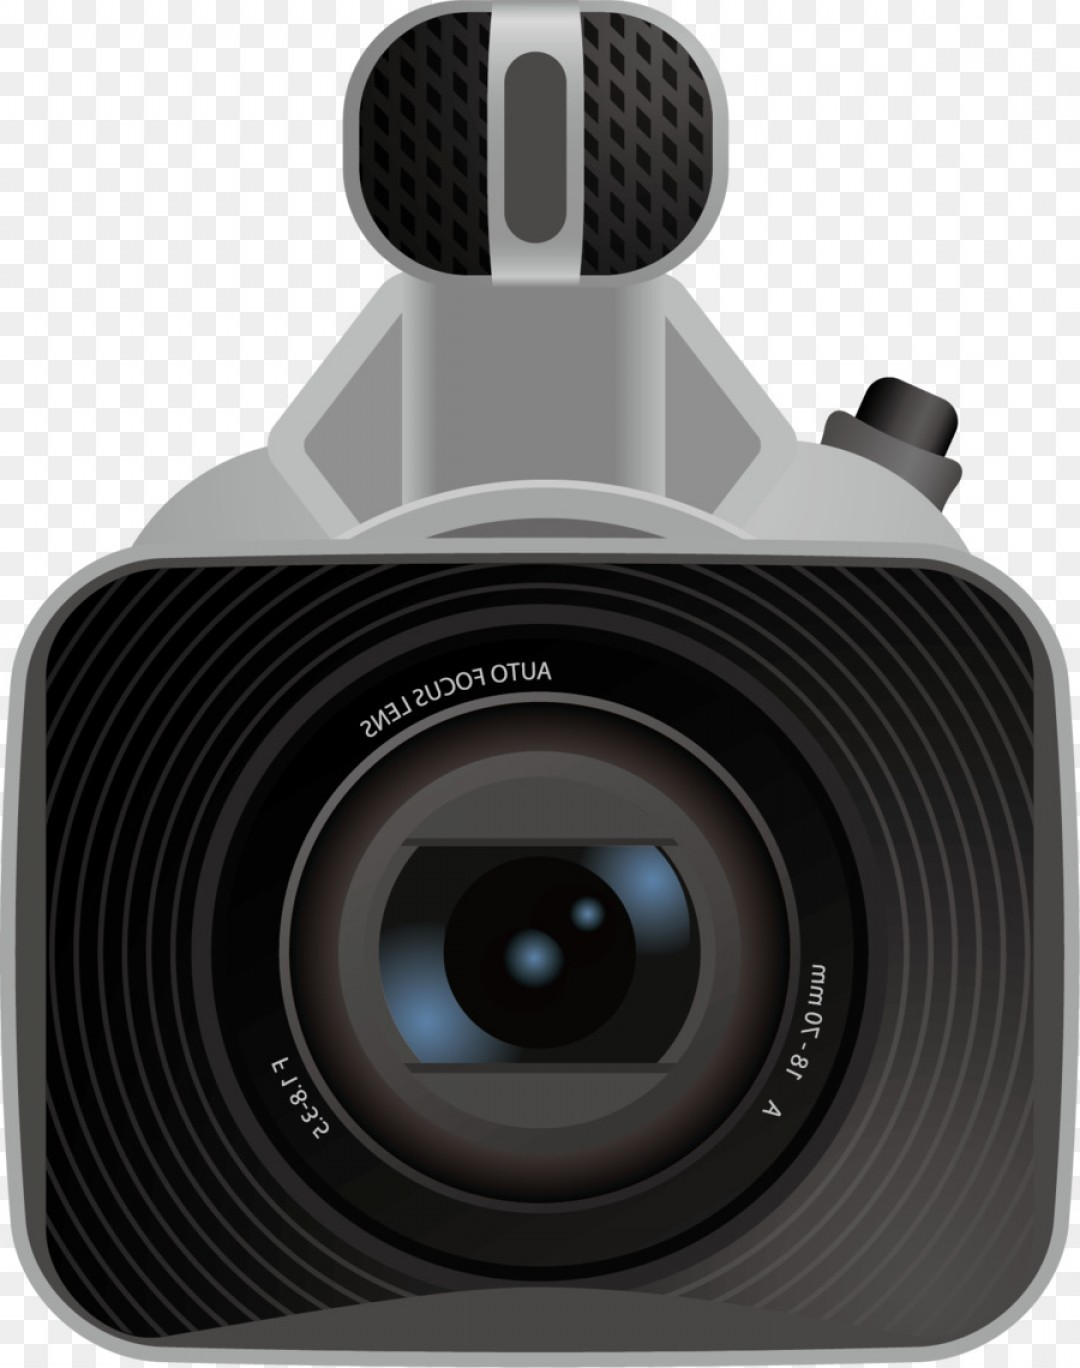 SLR Camera Vector: Png Digital Slr Camera Lens Webcam Webcam Png Vector M